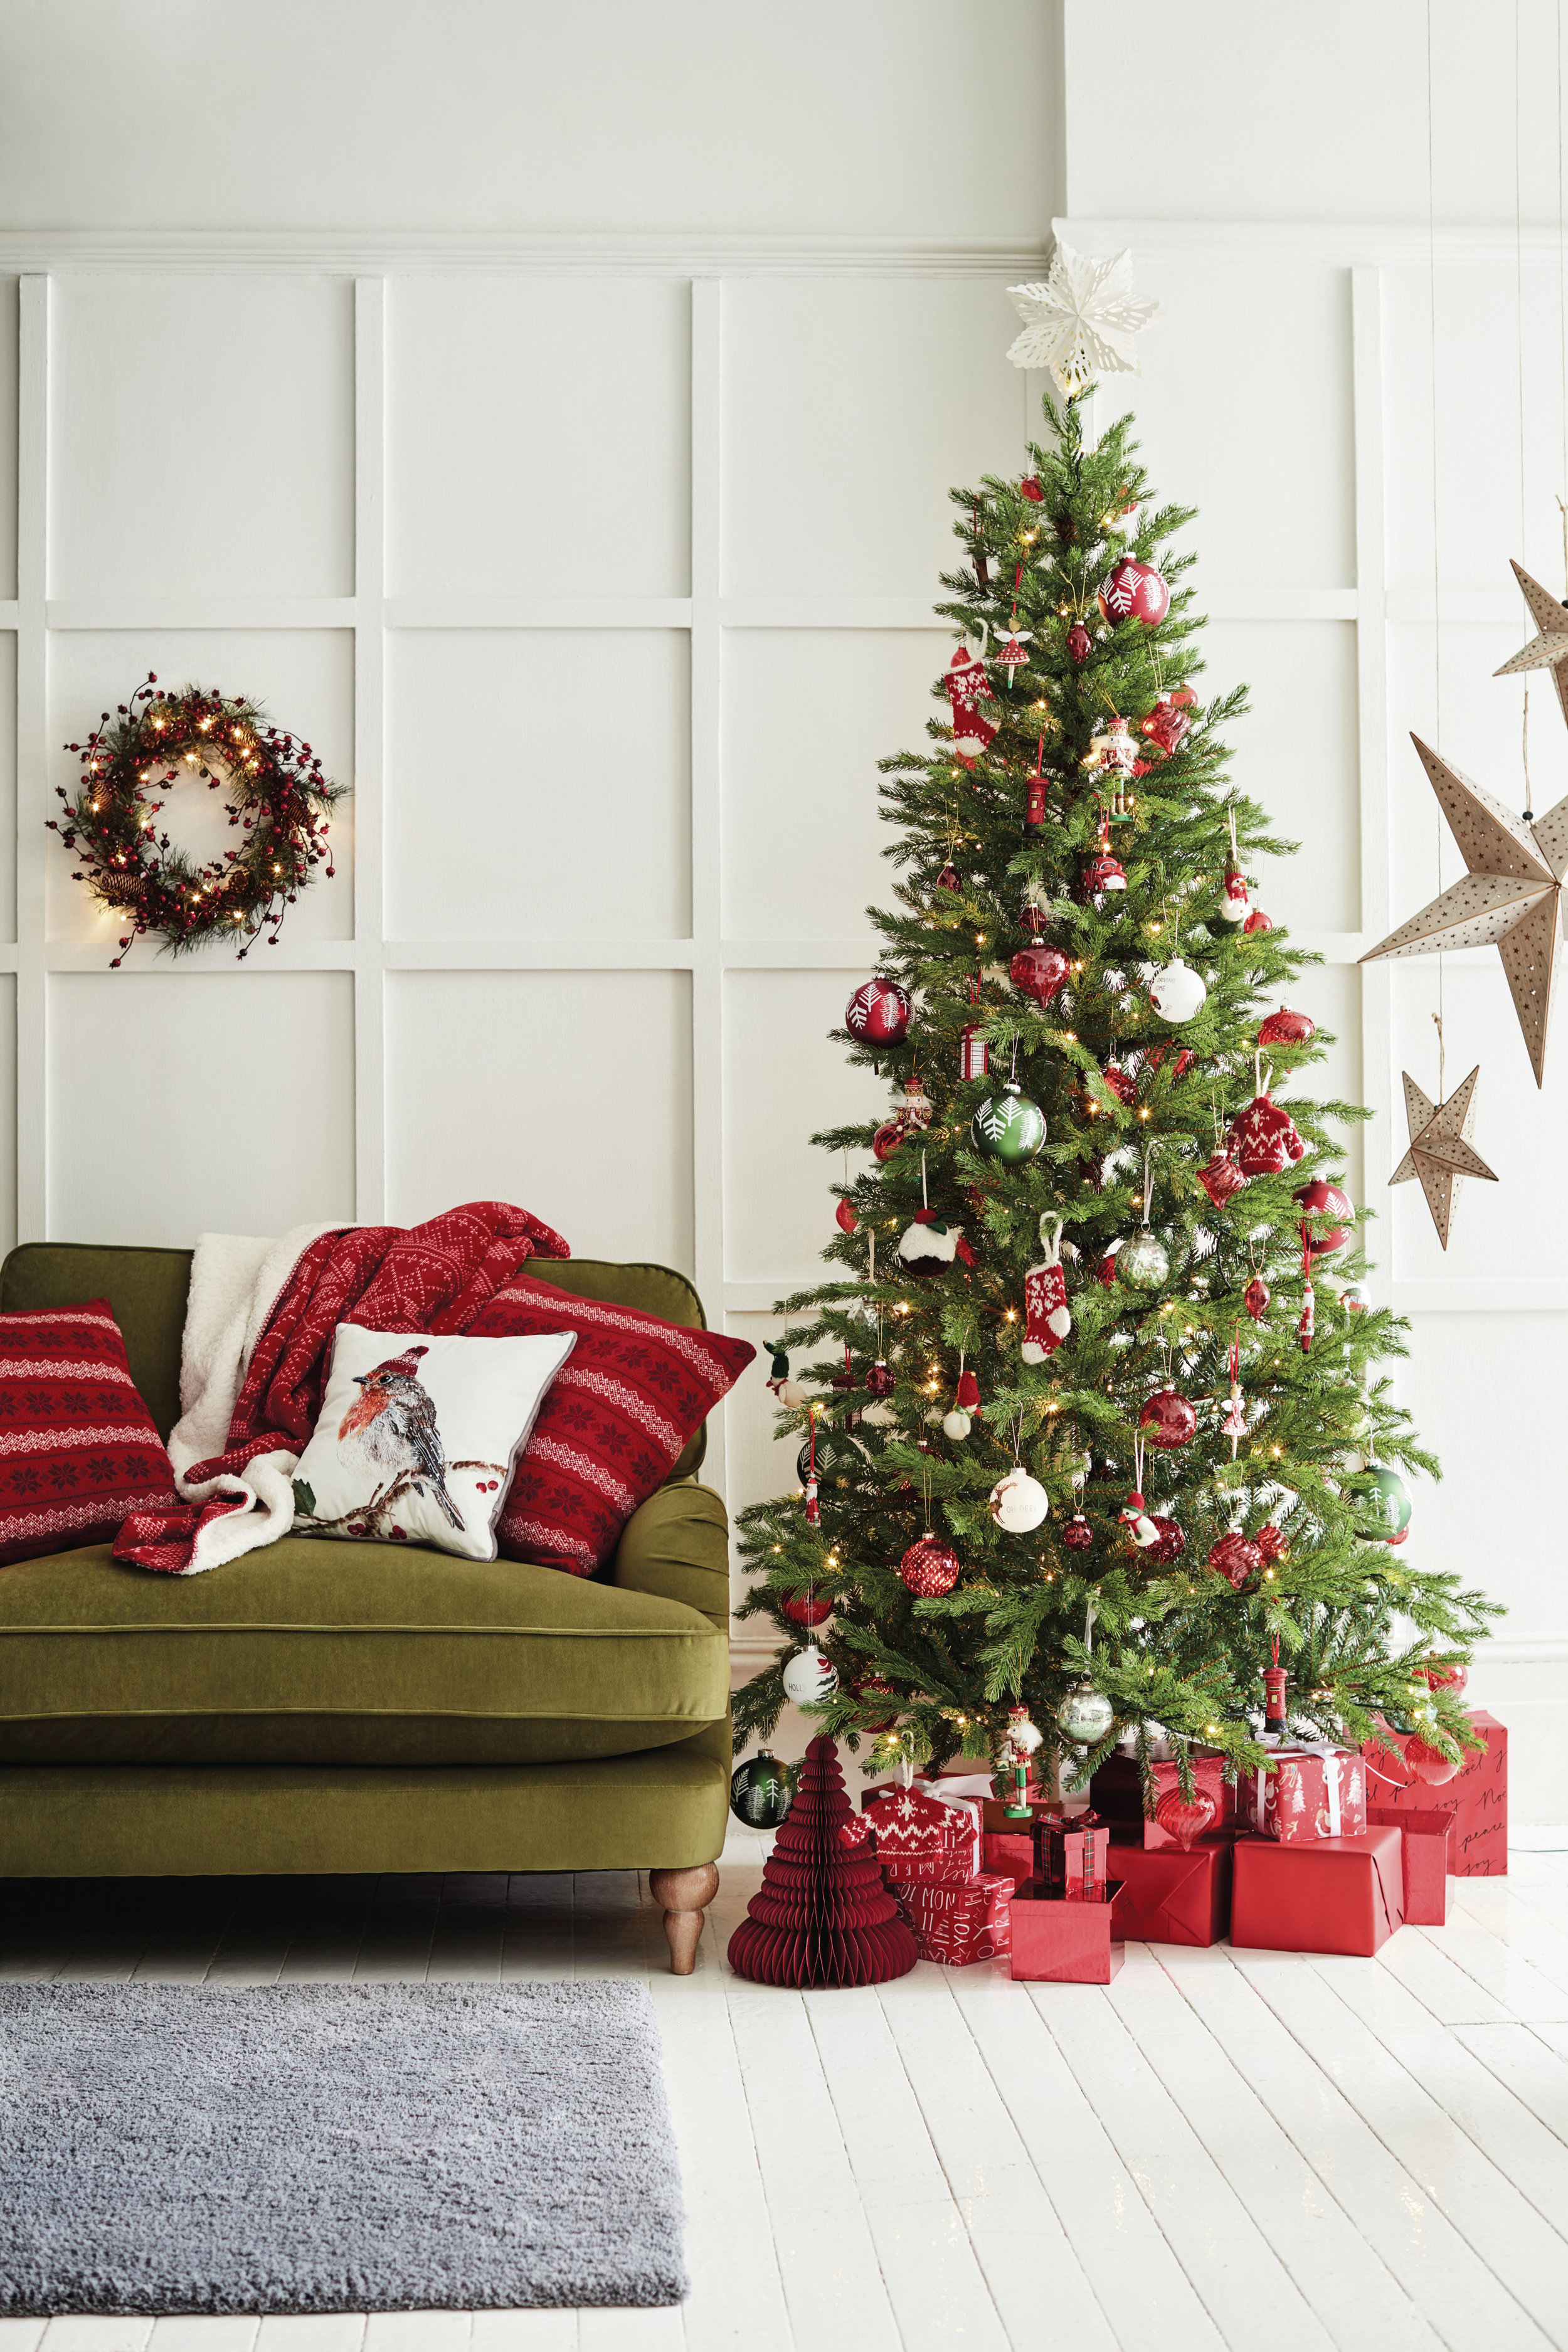 Classic & Traditional - The traditional Christmas decoration scheme will never go out of style. A combination of red, gold and green decorations is all you need to create that classic Christmas feeling. Here are some of our favourite traditional Christmas decorations. Image: Marks & Spencer